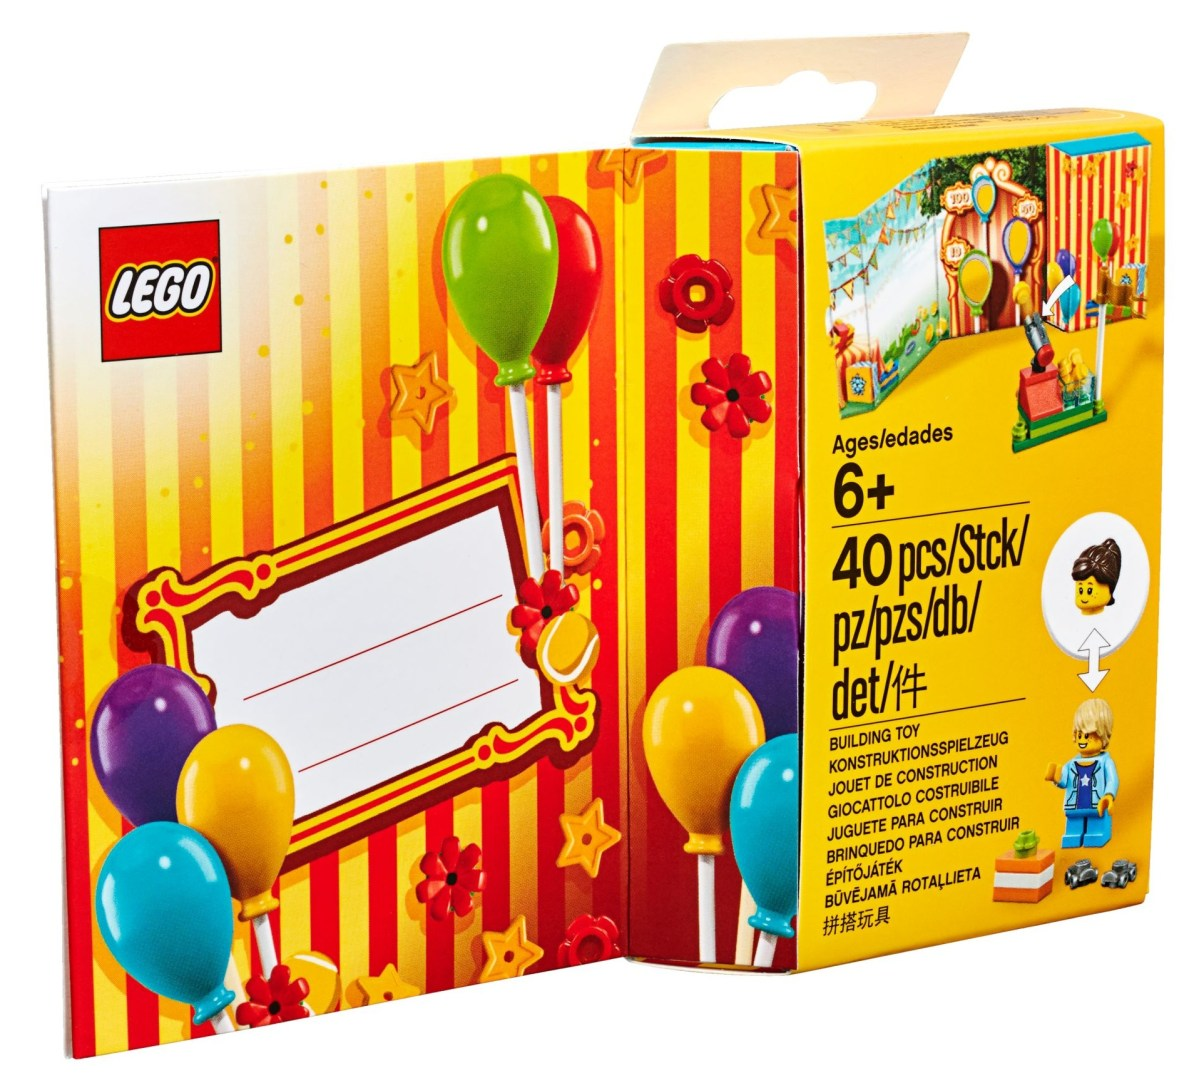 New LEGO Greeting Card (853906): Bricks and Minifigure Ensure this Correspondence Will See More Use and Play